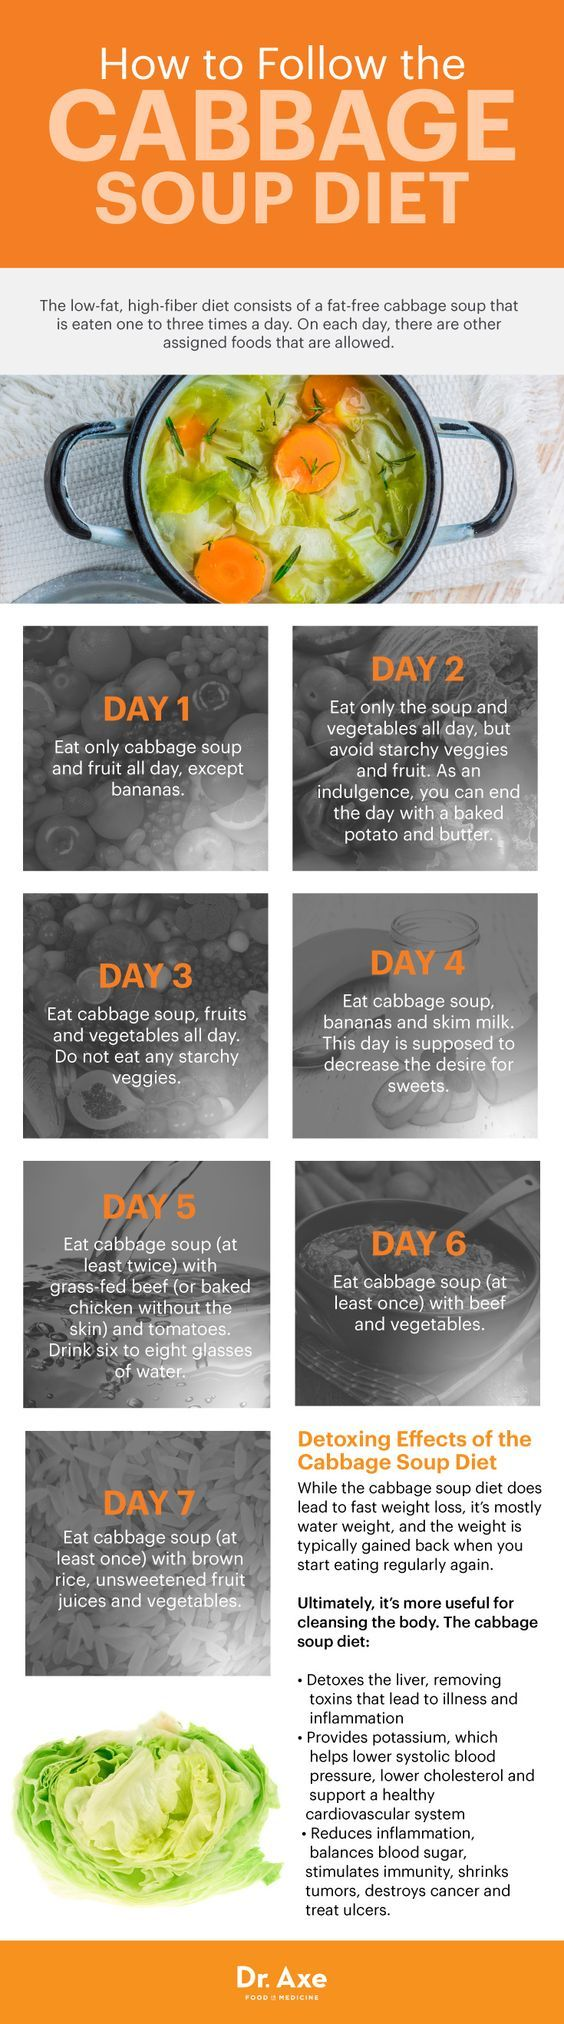 How to follow the cabbage soup diet - Dr. Axe http://www.draxe.com #health #holistic #natural: